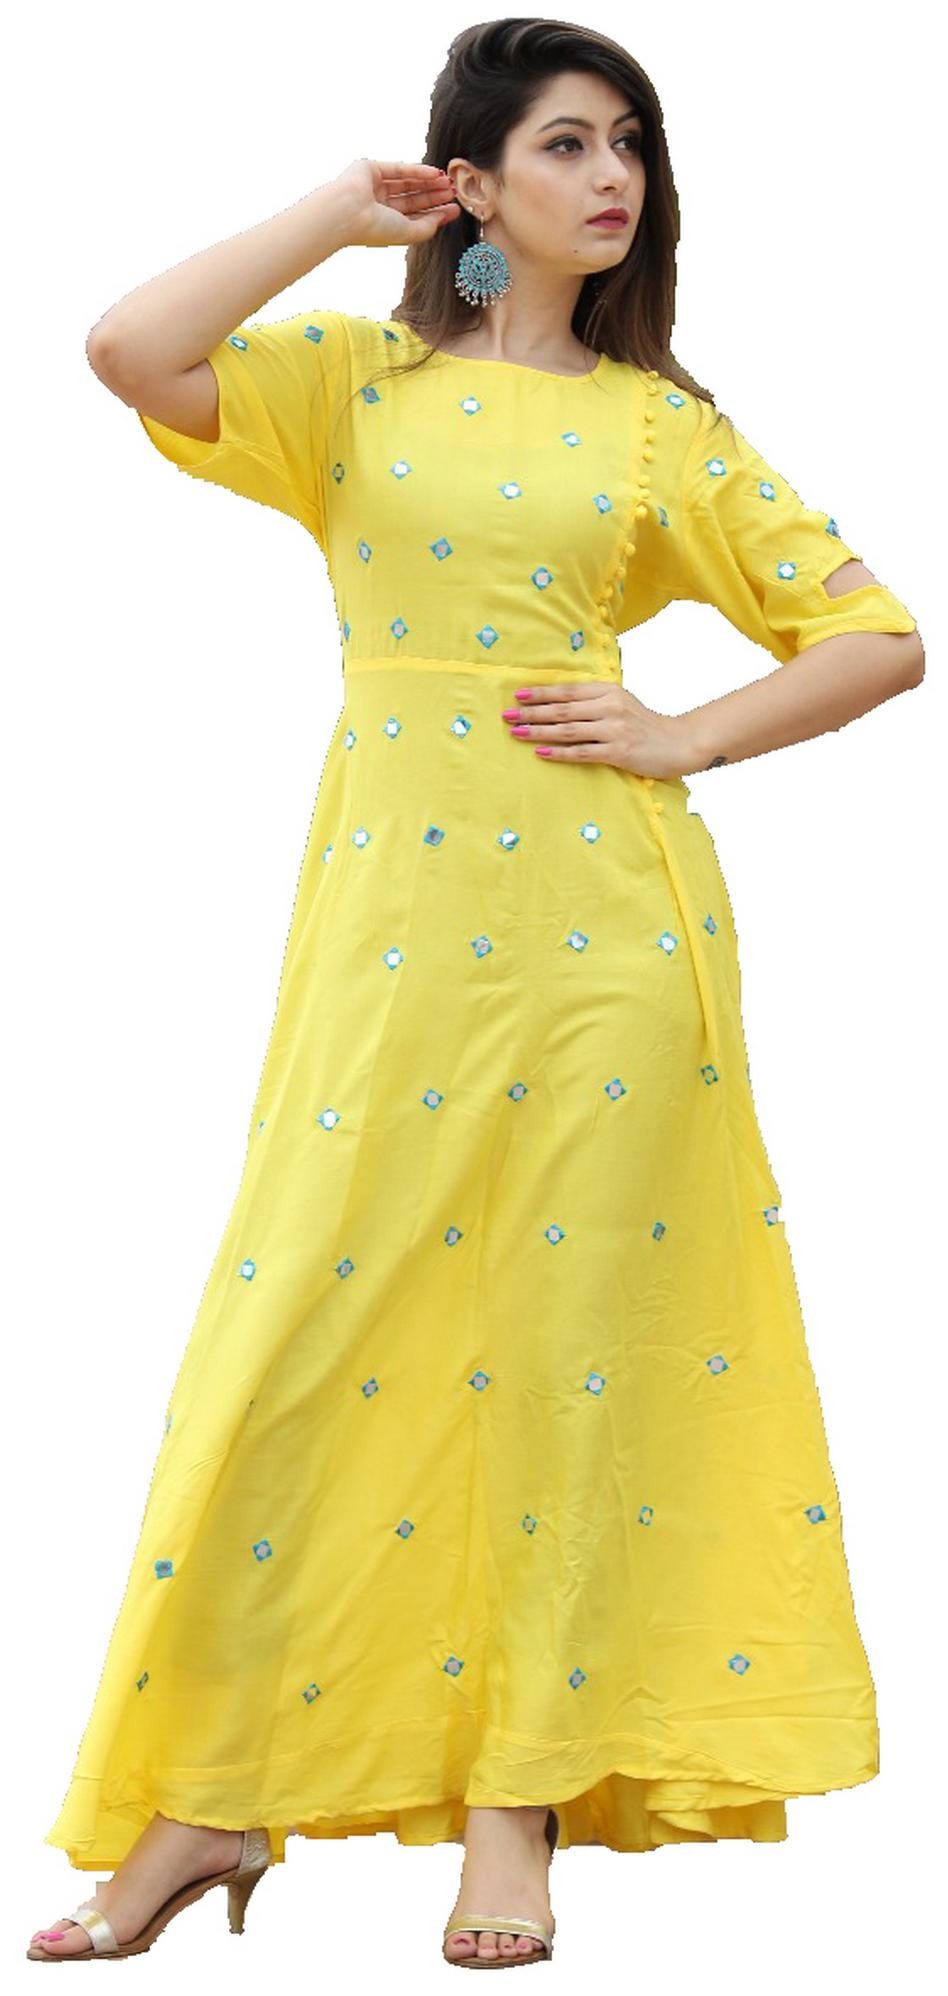 6th Avenue Yellow 3/4 Sleeve Rayon Kurti with Mirror Work - X-Large(42)